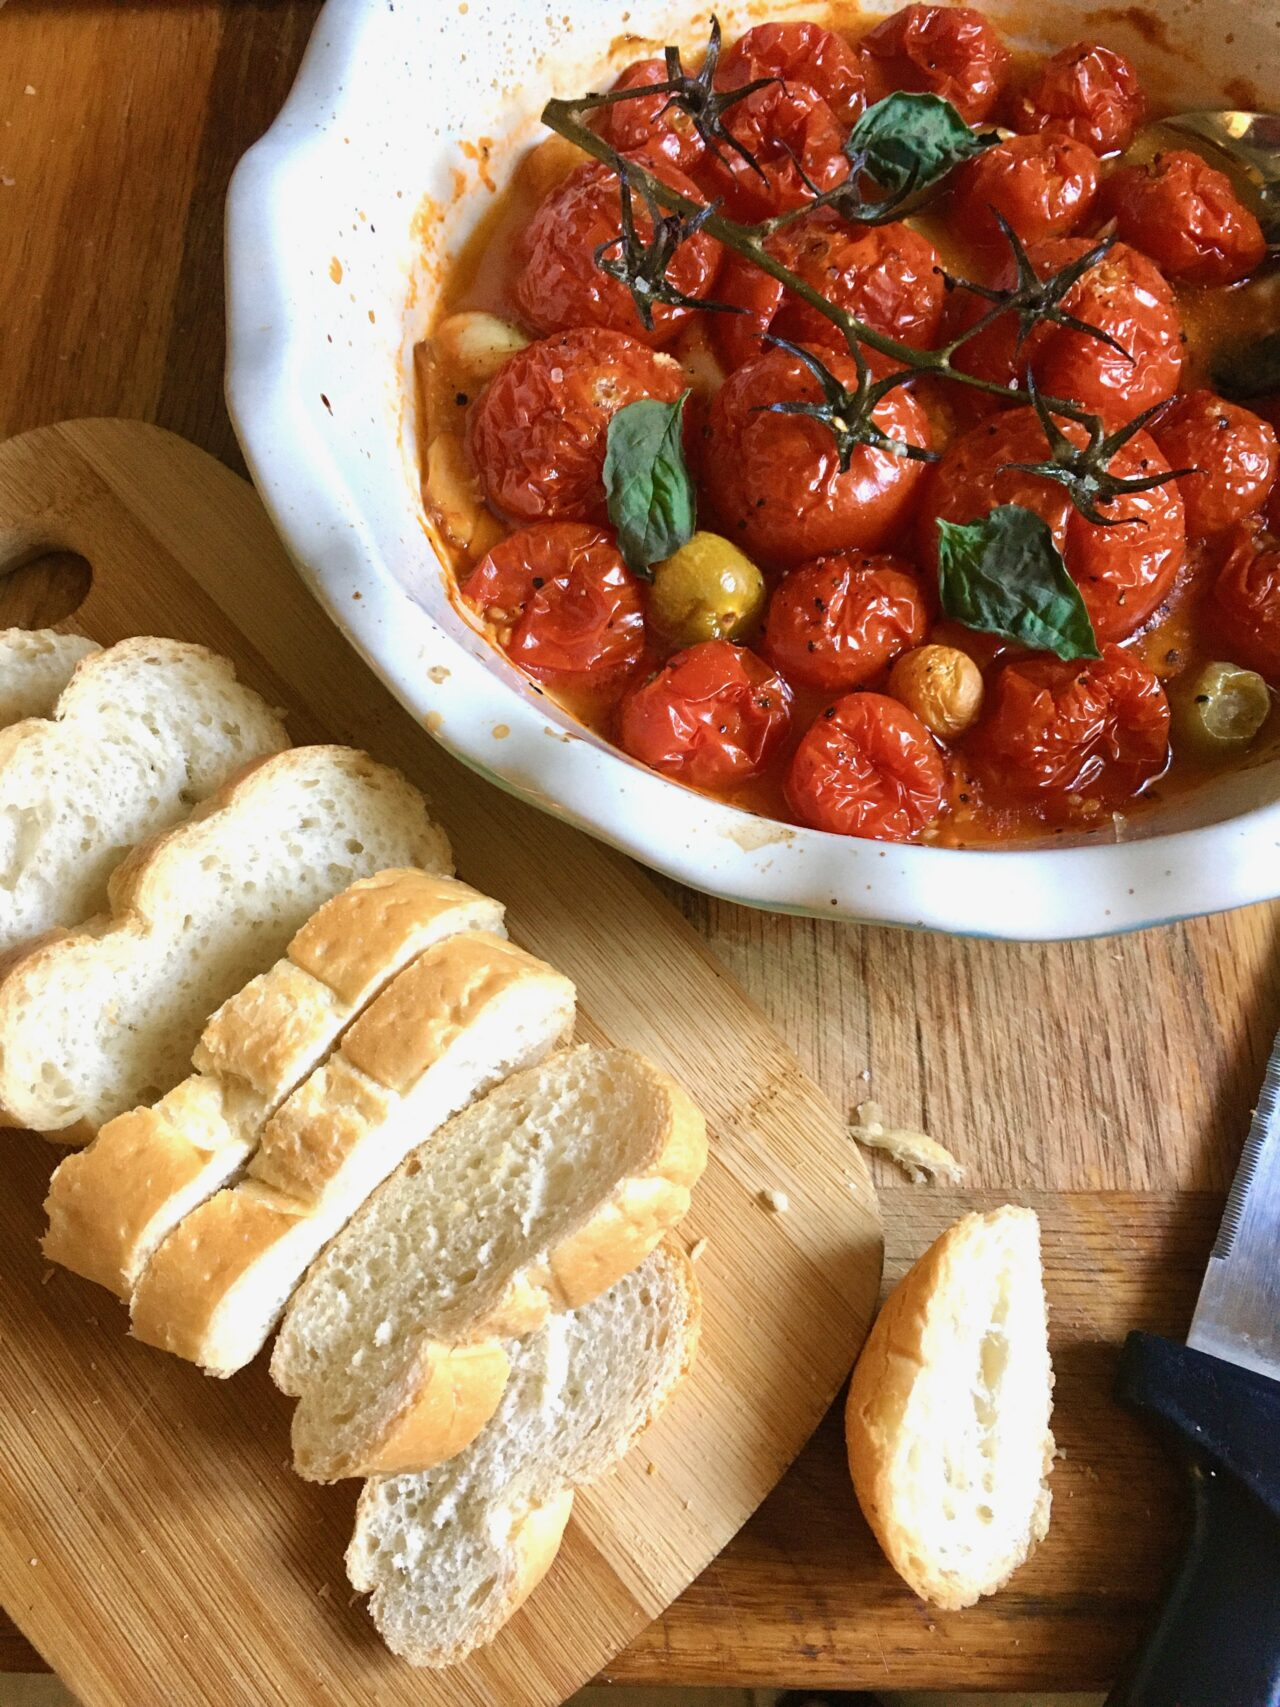 roasted tomatoes dip or spread over bread slices